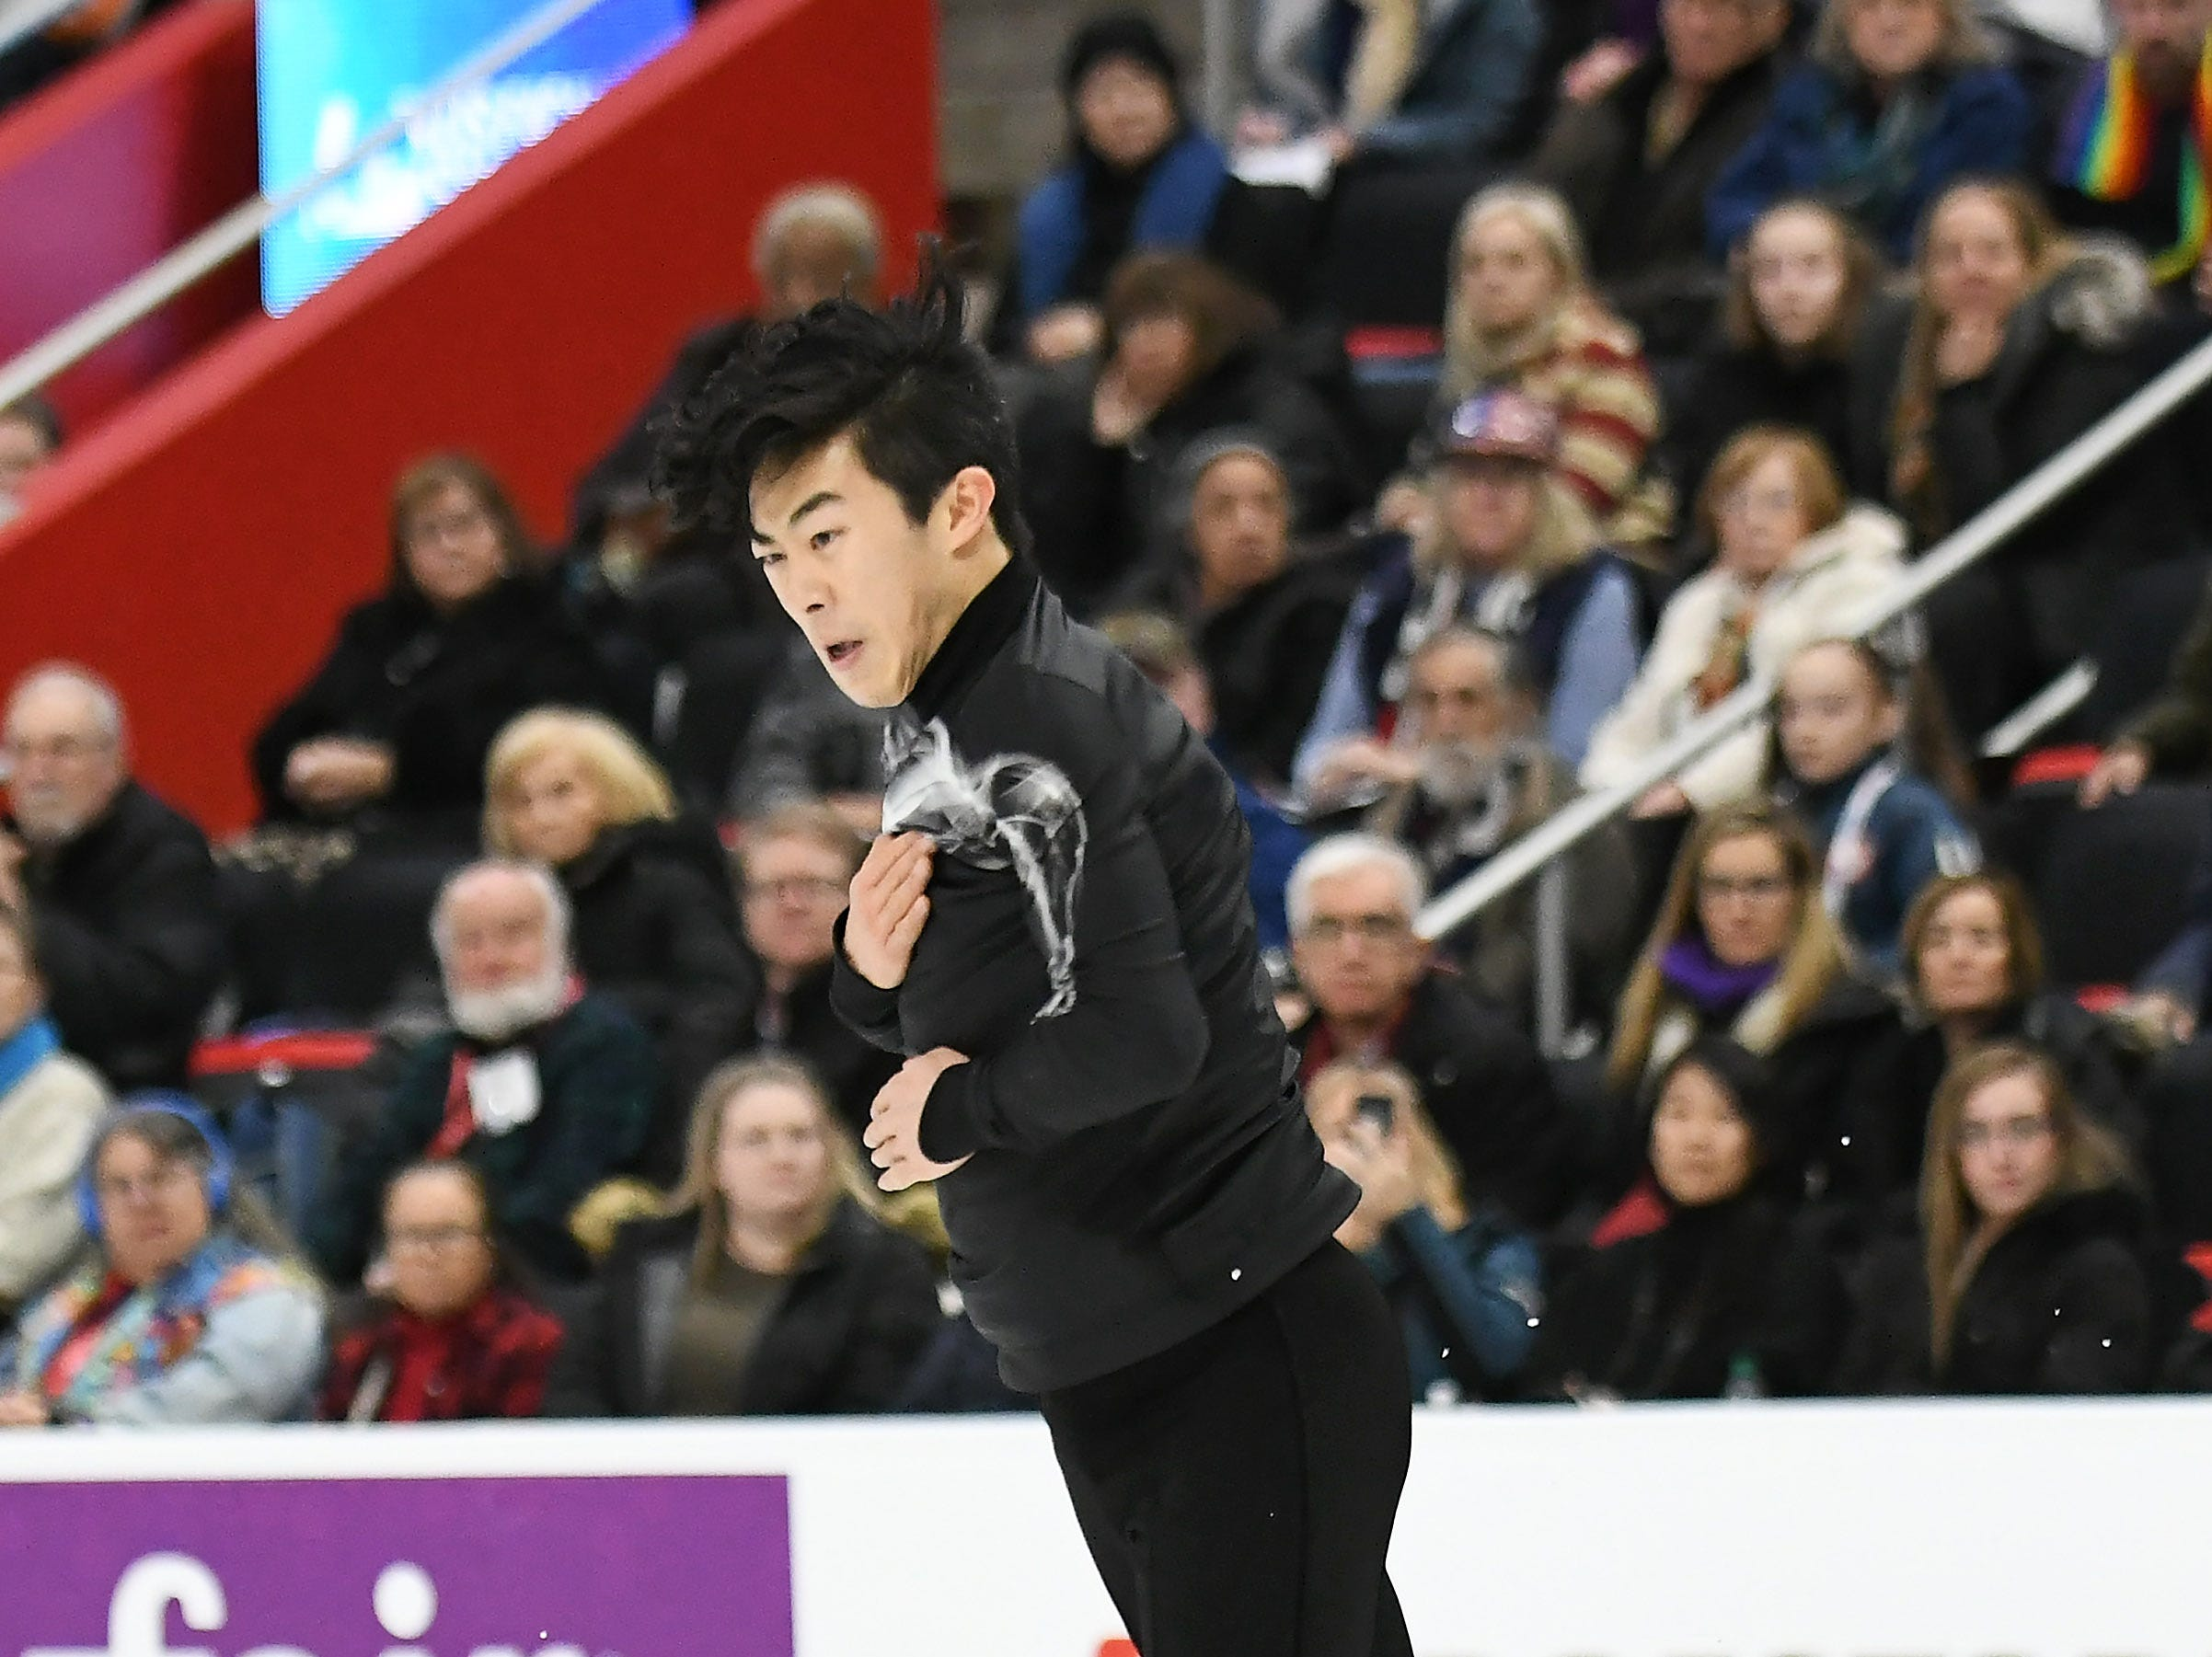 Nathan Chen skates in the men's free skate.